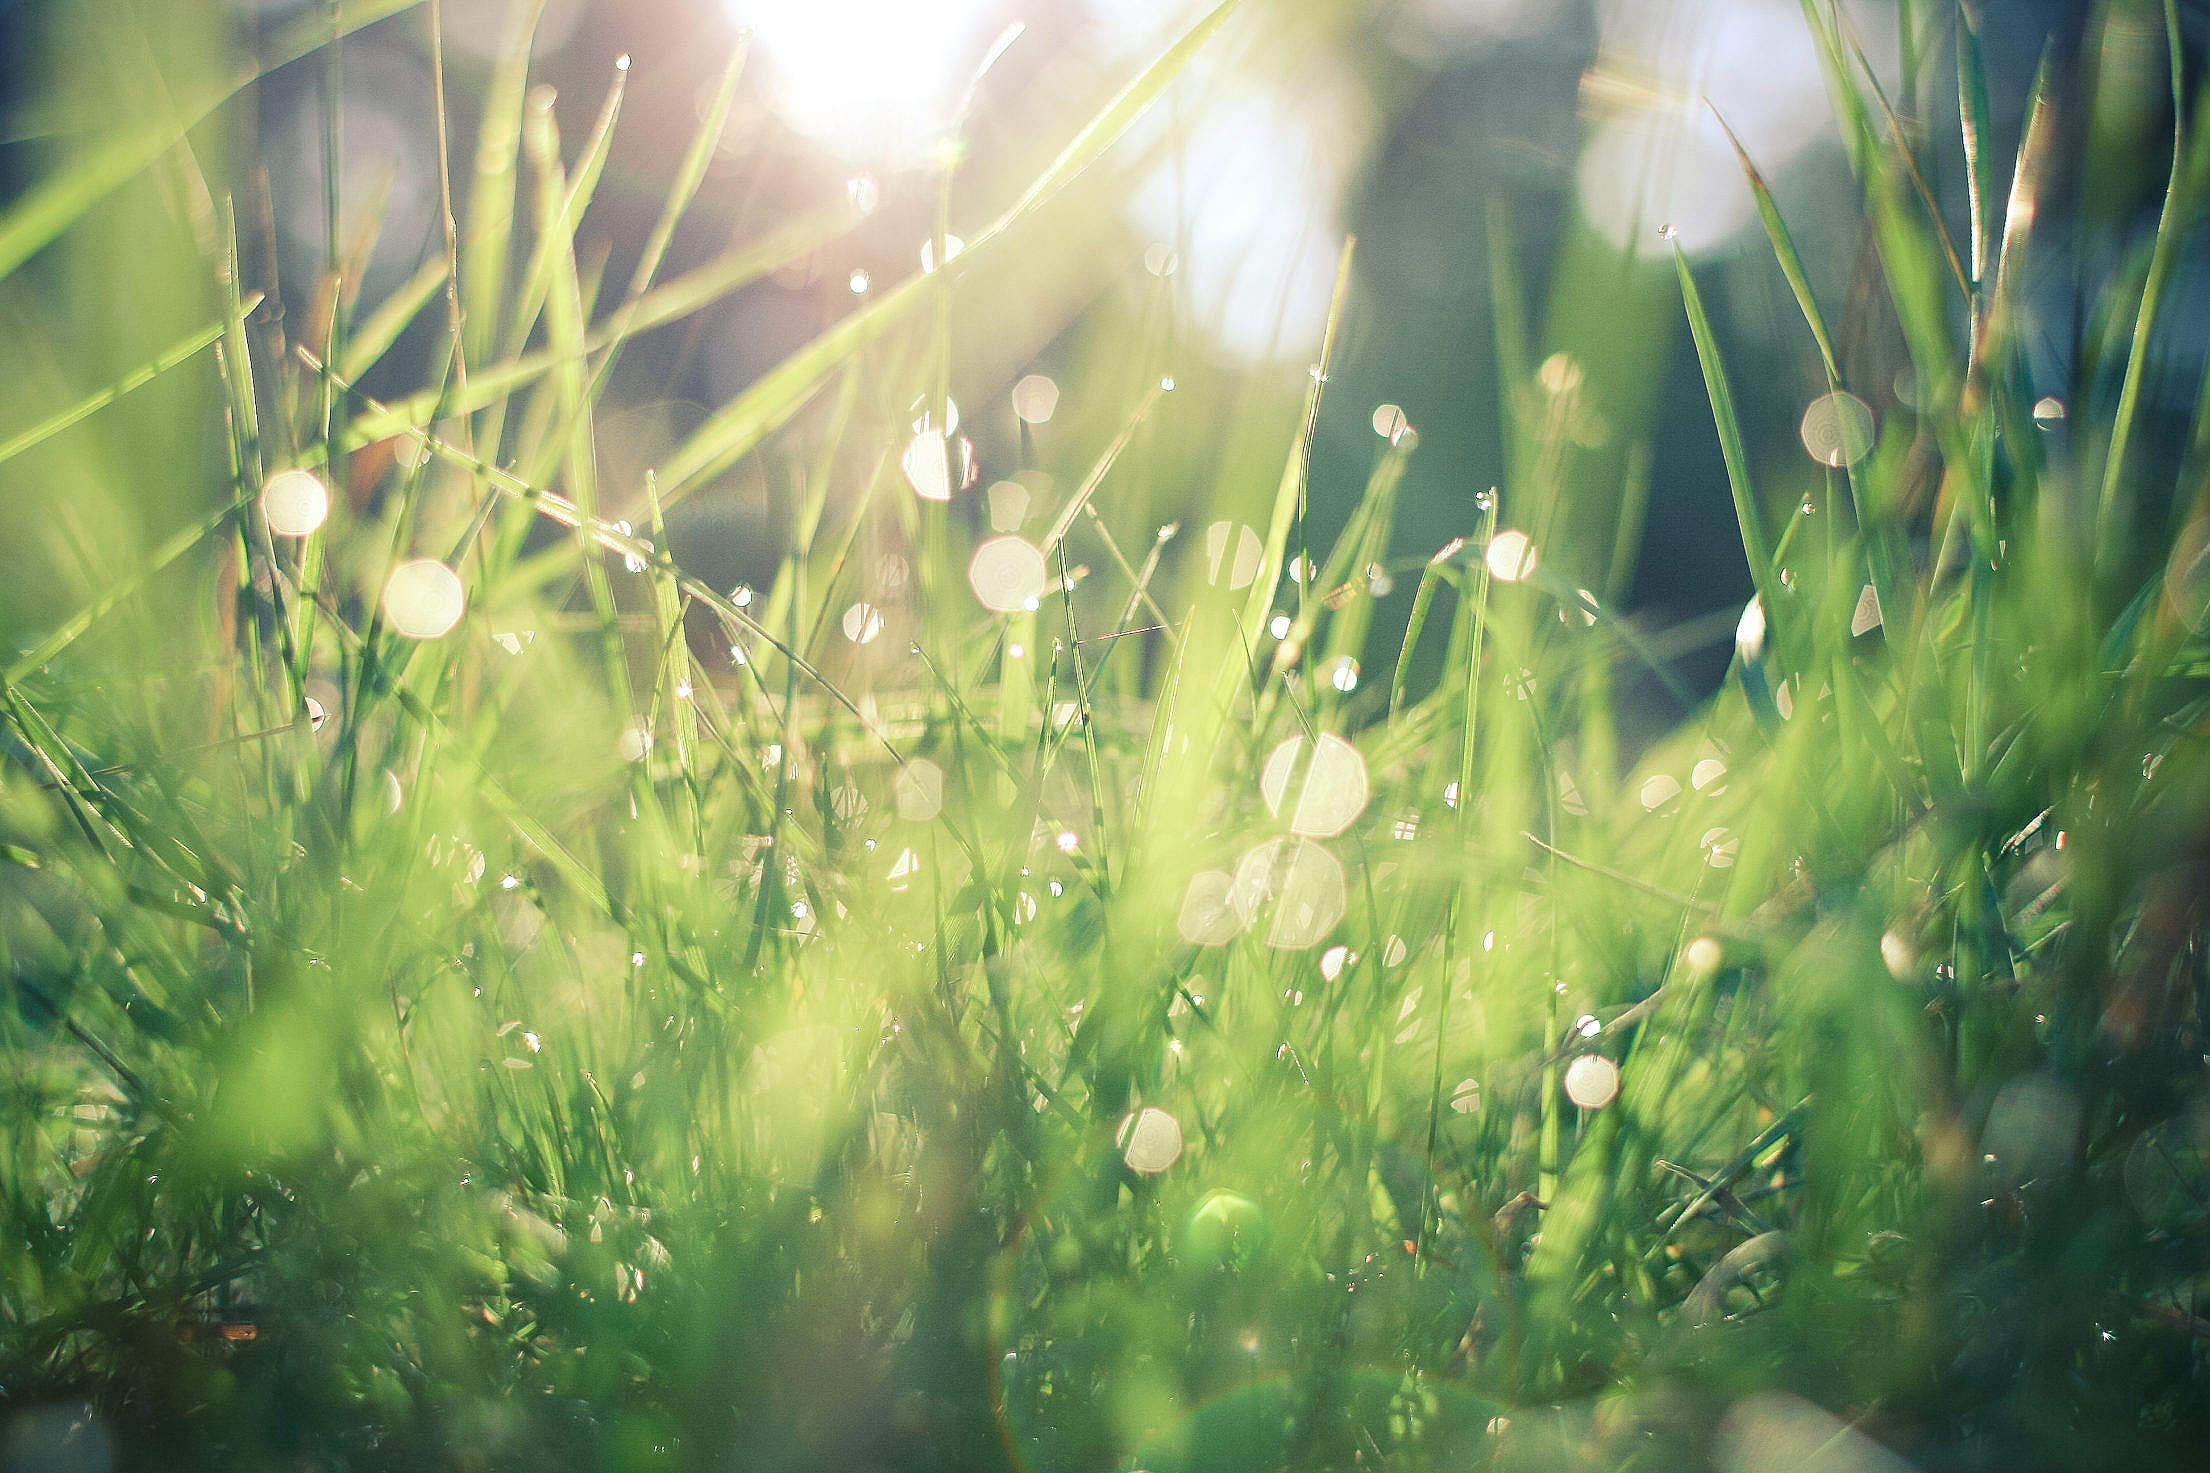 Dew in Grass Free Stock Photo